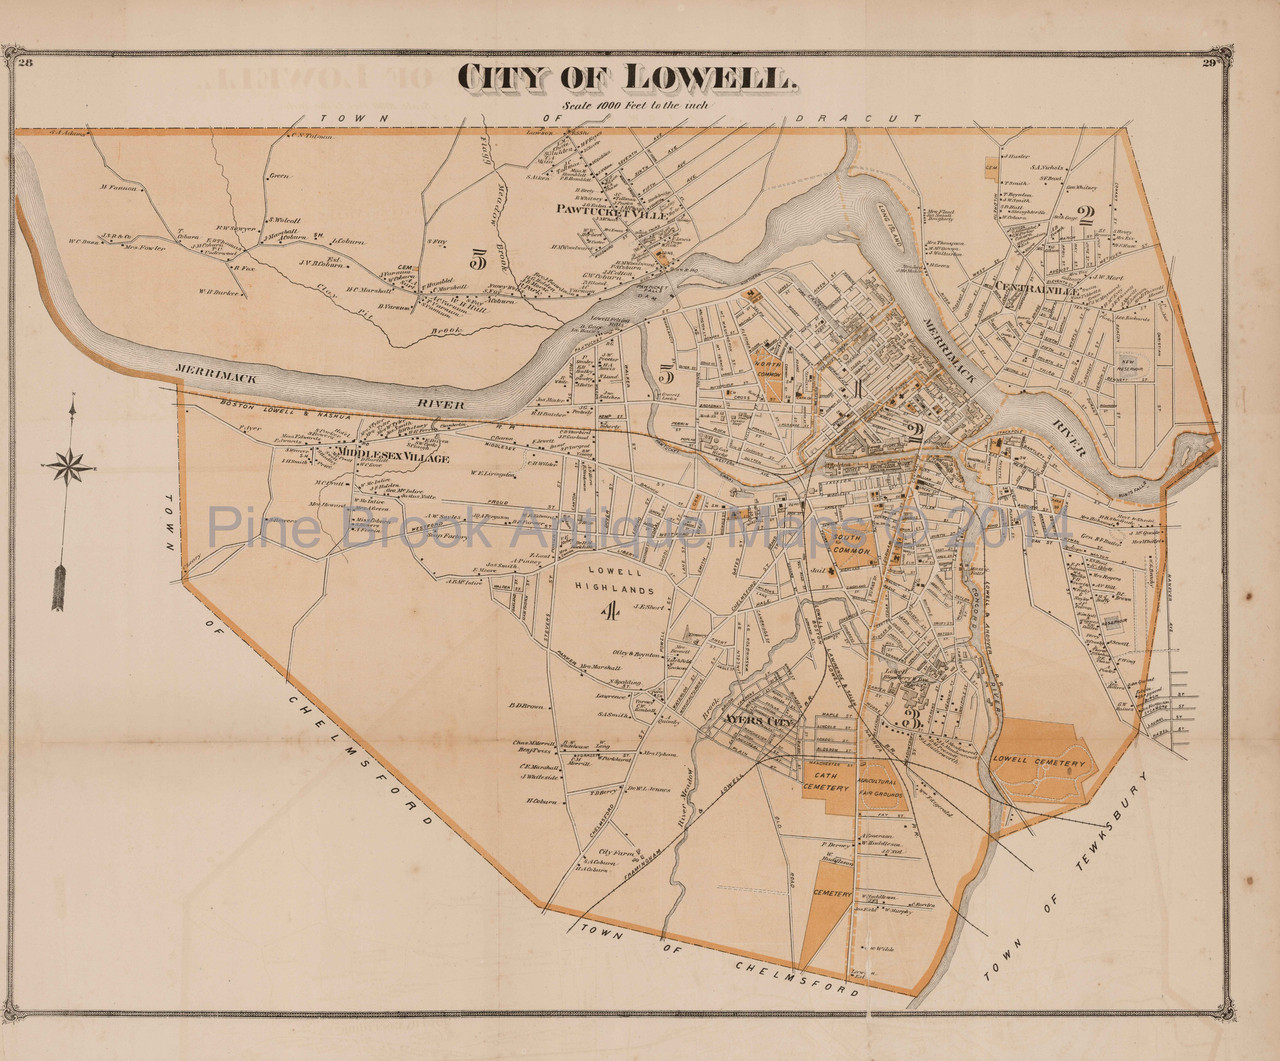 Lowell City Machusetts Antique Map Beers 1875 on boston ma map, lowell neighborhood map, uml south campus map, marlborough ma map, middlesex massachusetts map, westford ma map, woburn ma map, medford boston map, leominster ma map, lowell fire map, lowell massachusetts city map, newburyport ma map, springfield ma map, watertown ma map, revere ma map, peabody ma map, worcester ma map, lowell street map, methuen ma map, somerville ma map,